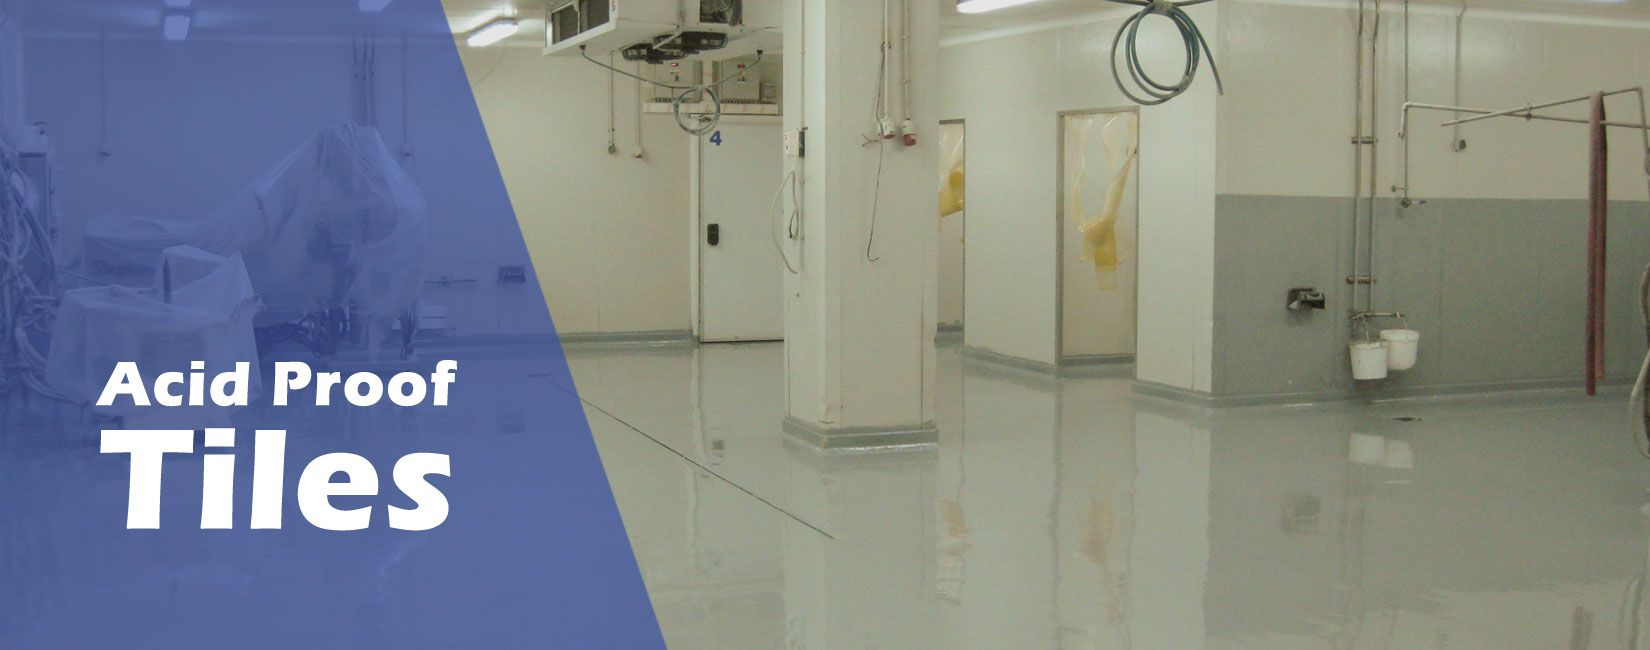 Acid Proof Tiles Manufacturer, Supplier and Exporter in Ahmedabad, Gujarat, India